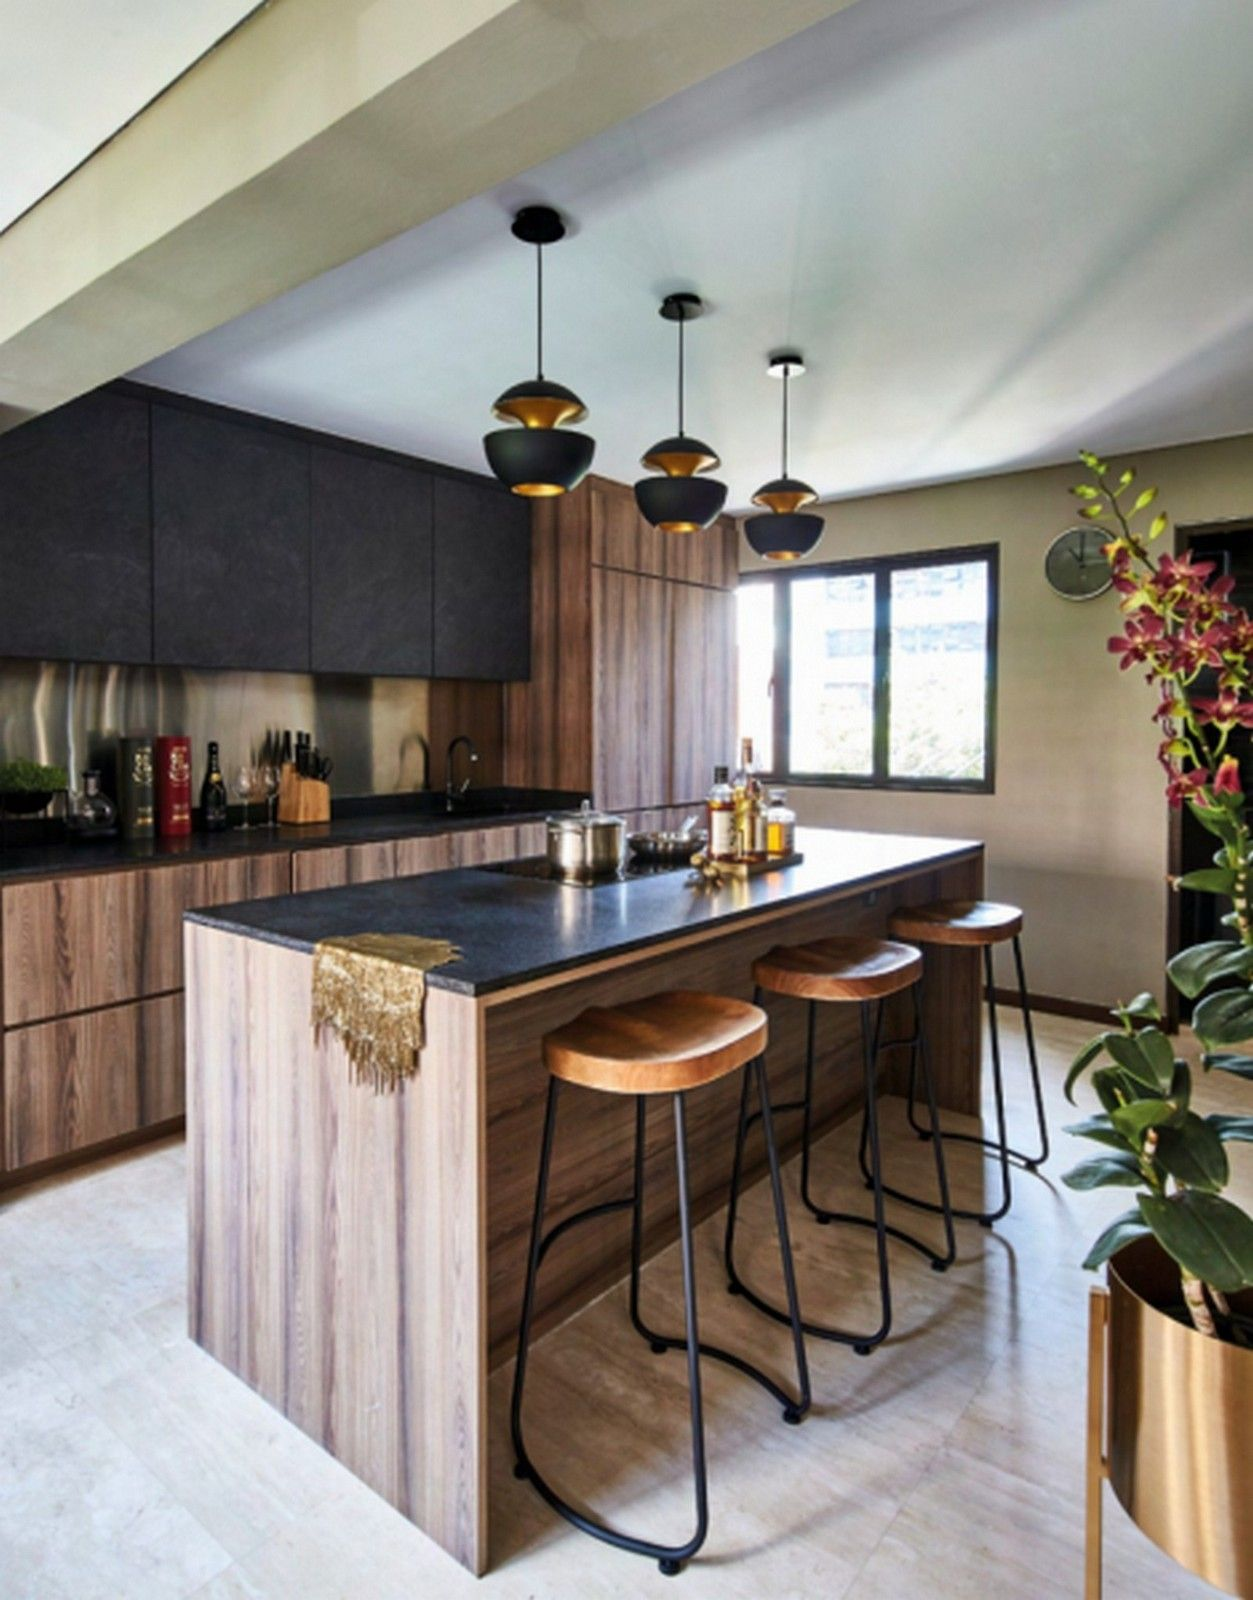 Hdb Living Room Decorating Ideas: Open Kitchen Ideas For Your HDB Flat, News